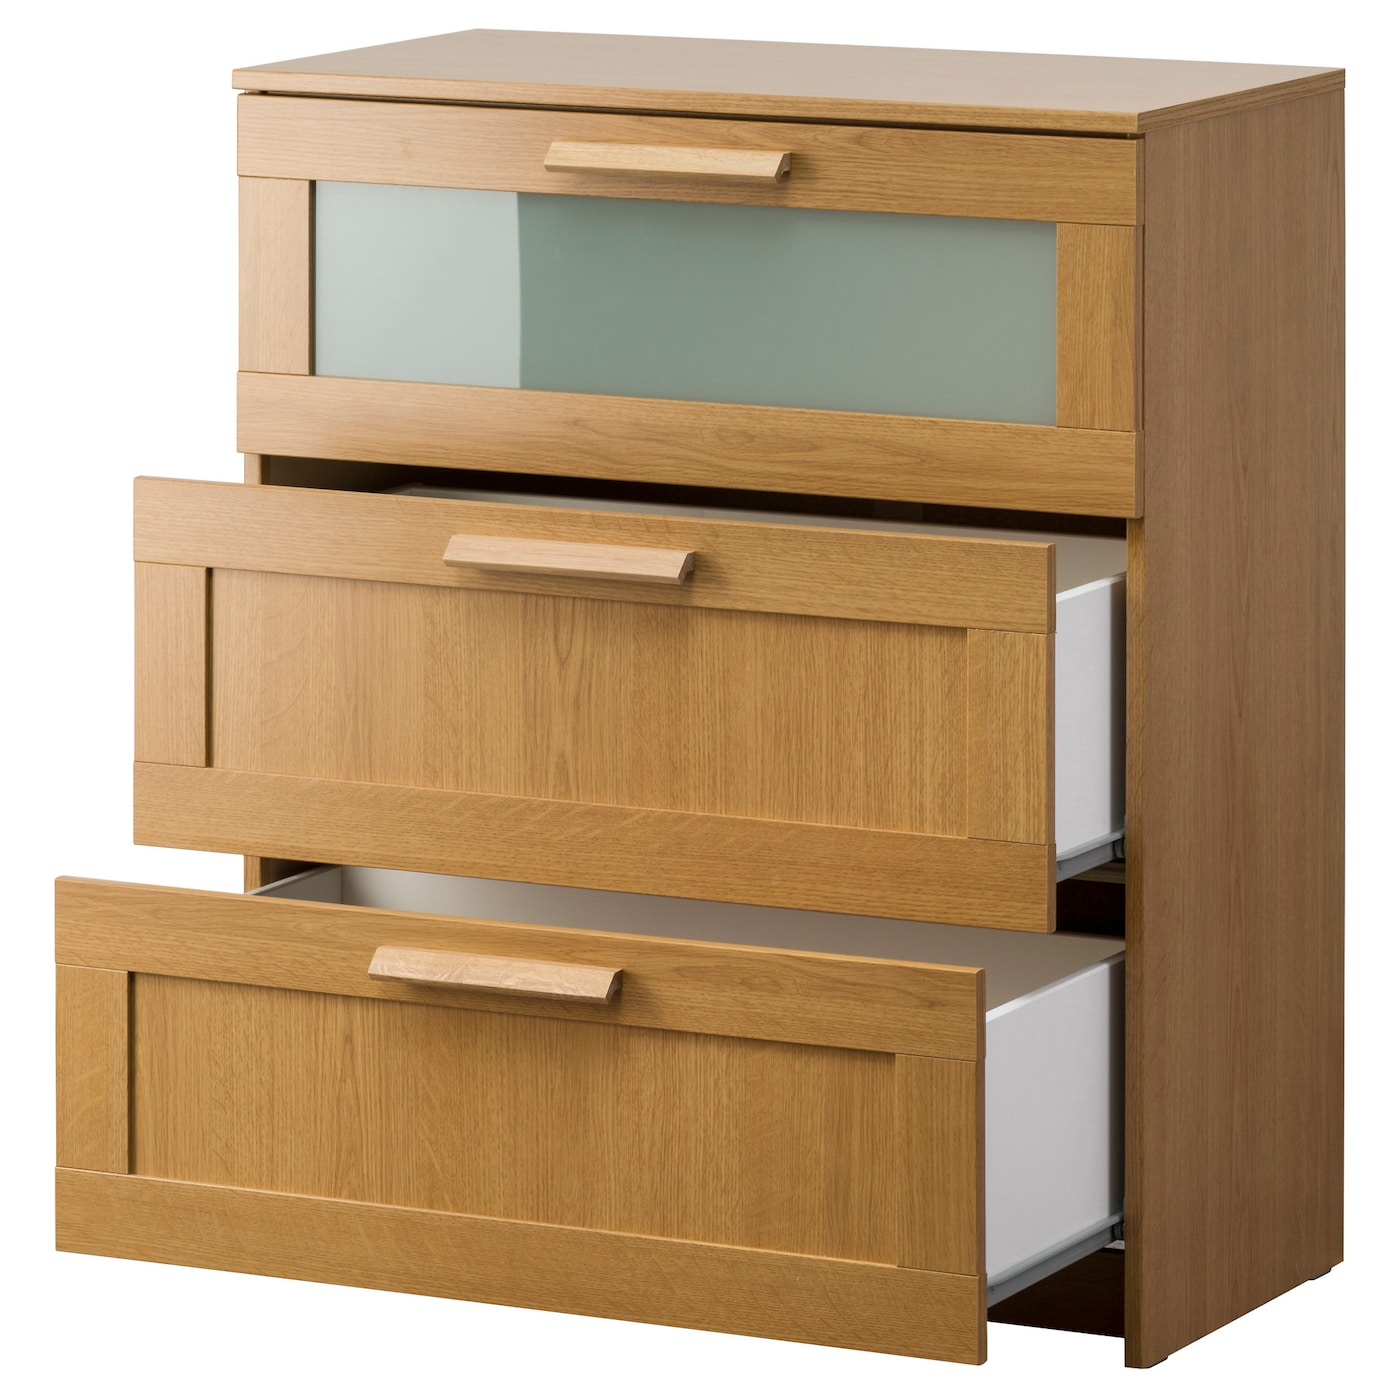 BRIMNES Chest Of Drawers Oak Effectfrosted Glass X Cm IKEA - Ikea chest of drawers